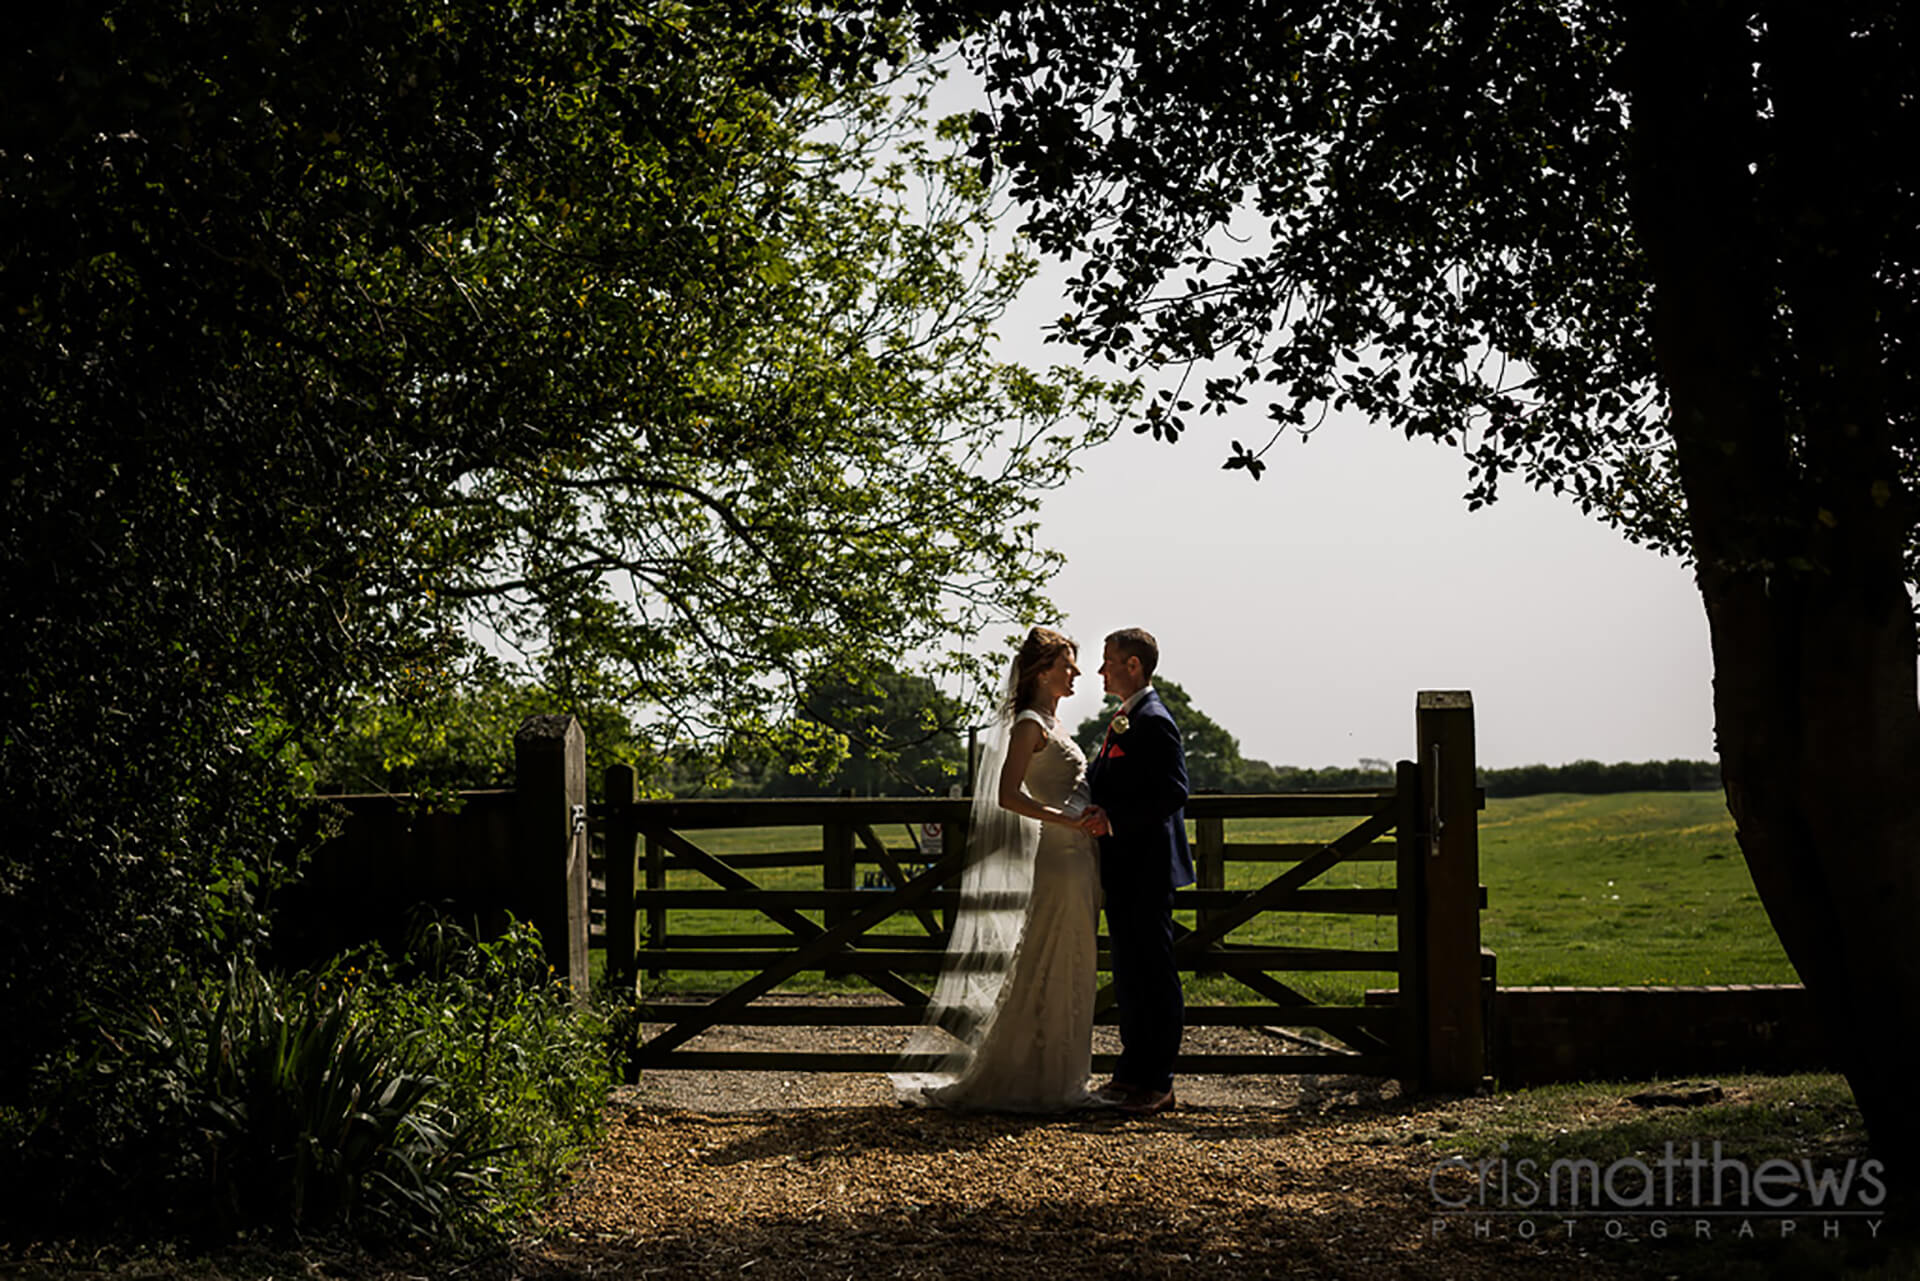 "Rhank you to <a href=""http://www.crismatthews.com/"">Chris Matthews Photography</a>for this shot of Bride and Groom exploring the grounds."